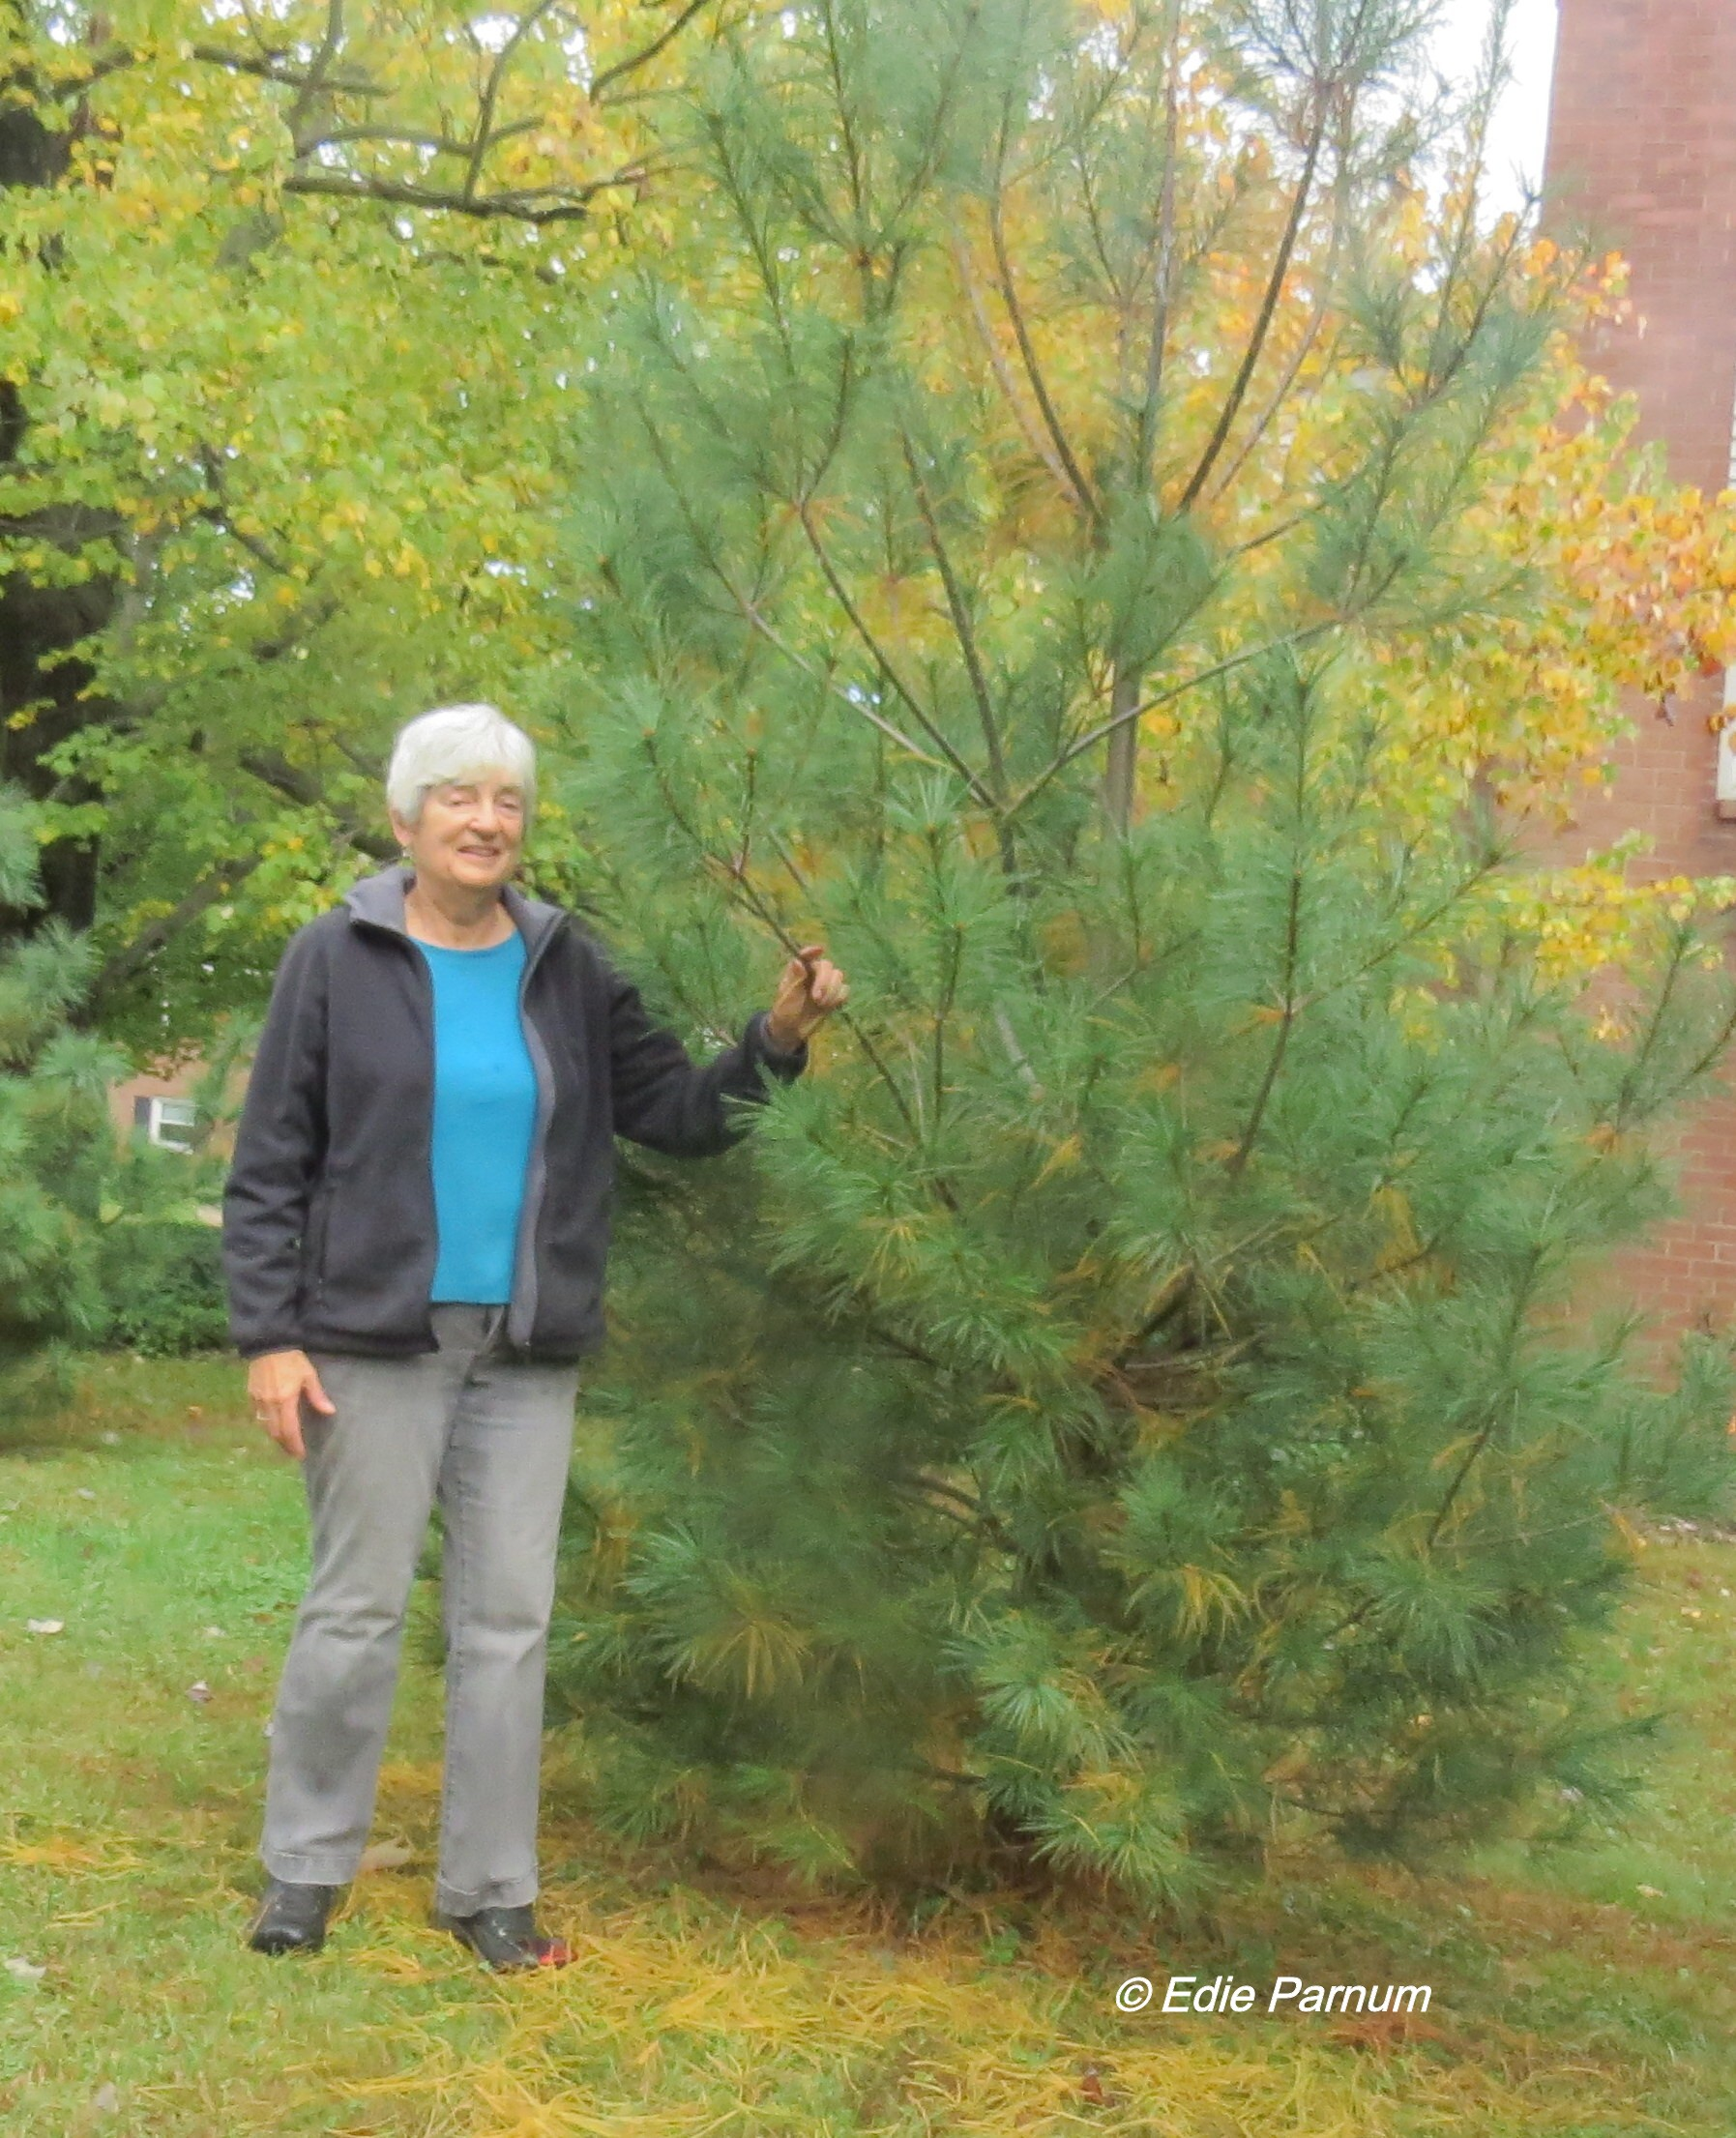 The Sapling Of This 10 Foot White Pine Was 6 Inches Tall When Transplanted Five